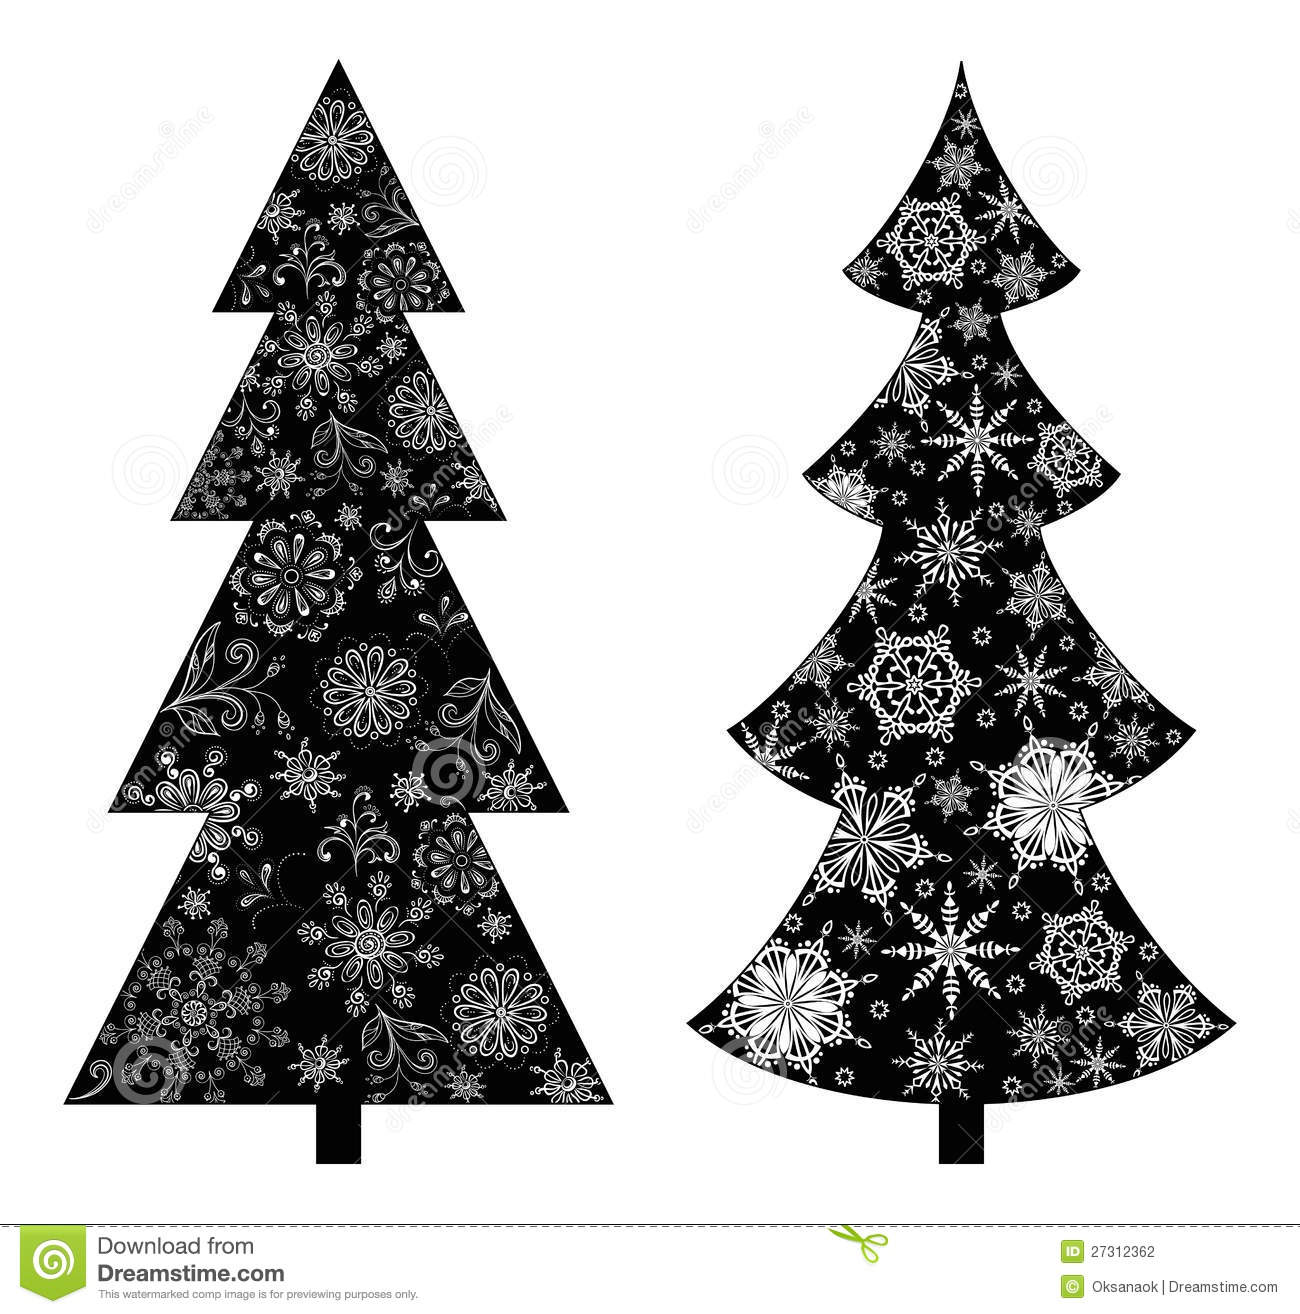 Schwarz Xl Christmas Trees, Silhouette Stock Vector - Image: 27312362